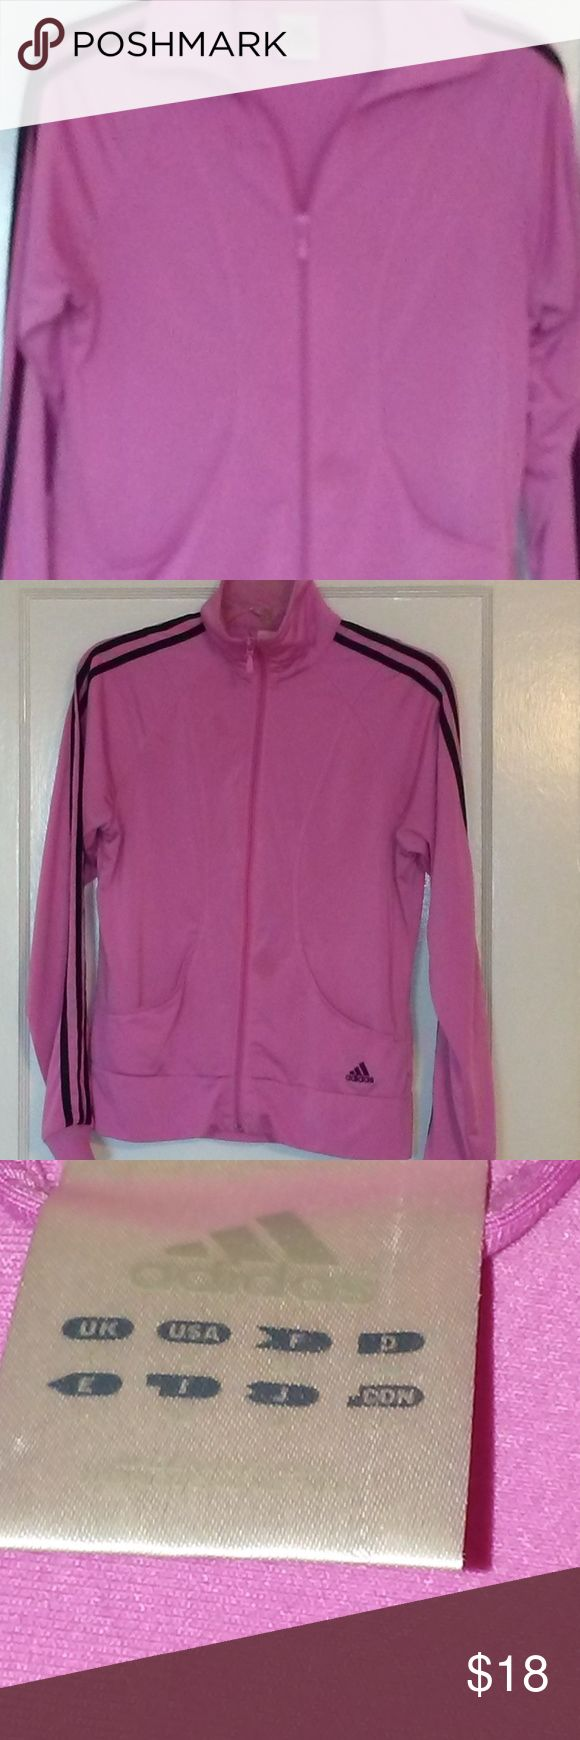 Adidas Women's Pink Black Stripes Track Jacket Siz Adidas Women's Pink Black Stripes Track Jacket Size S Zip Up Mock Turtleneck .  Thank you for your interest in my listing!!  Happy Shopping!! adidas Jackets & Coats